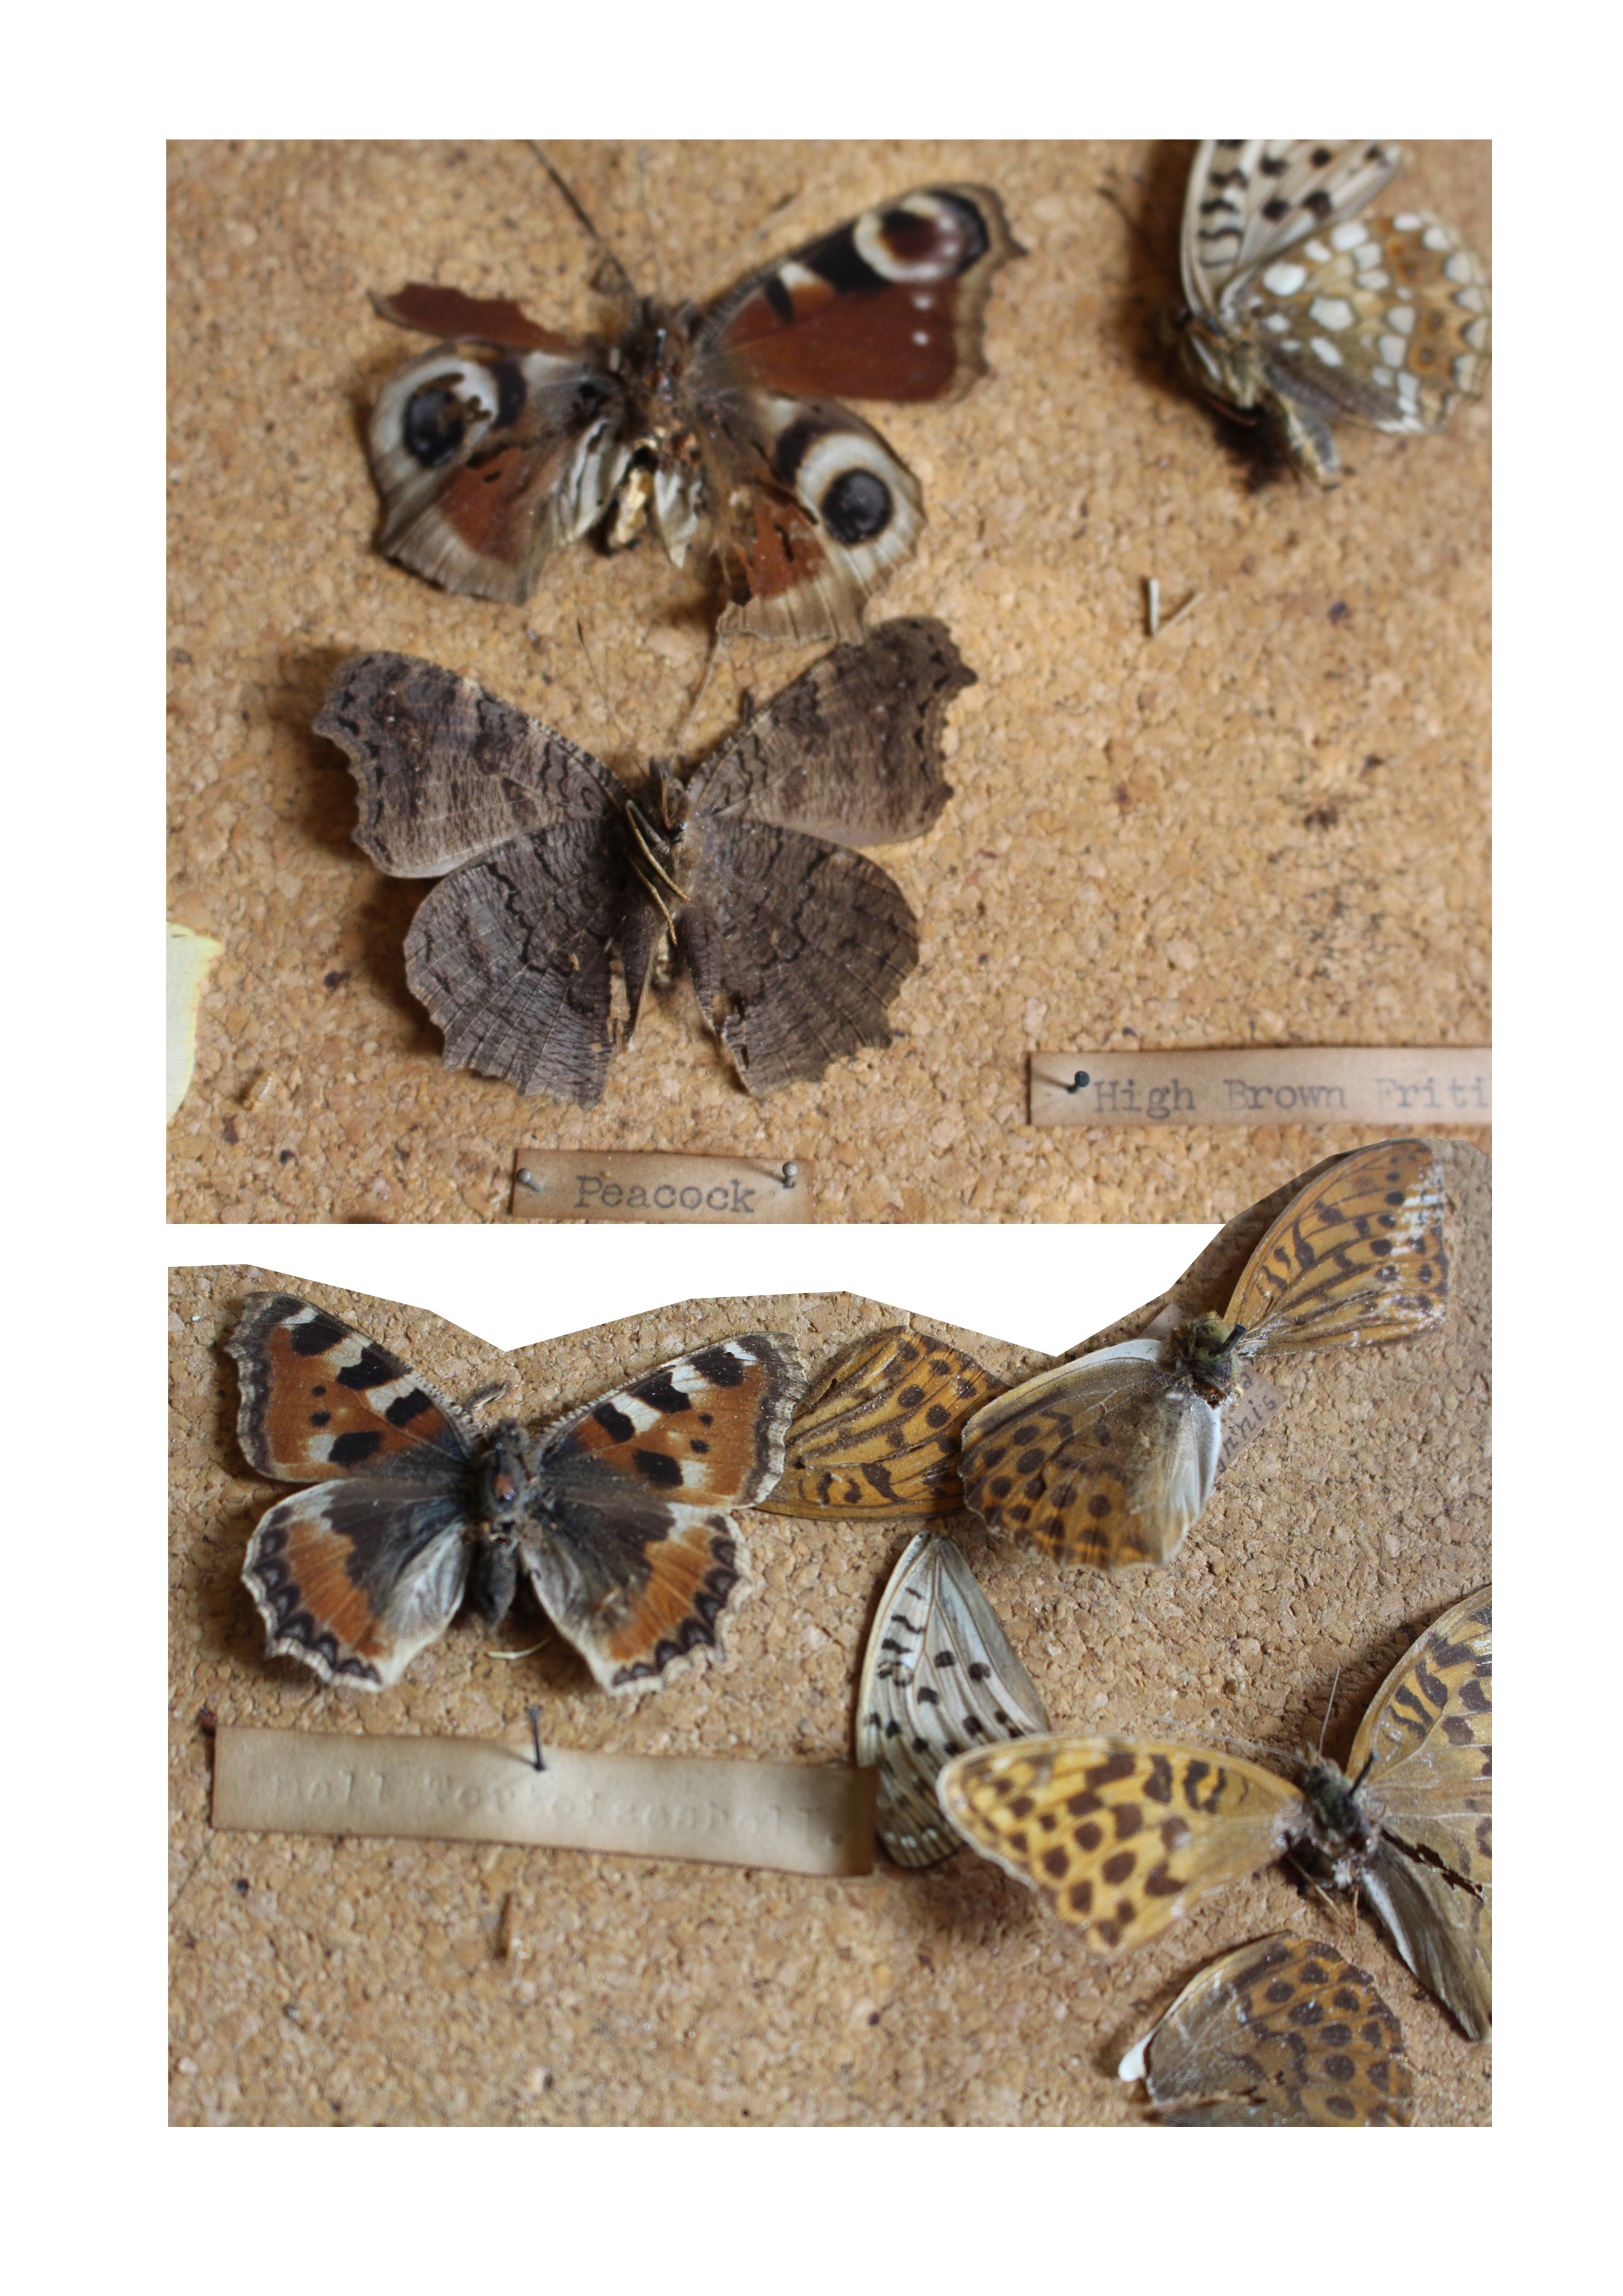 Peacock and High Brown fritillary butterflies along with a Small Tortoiseshell